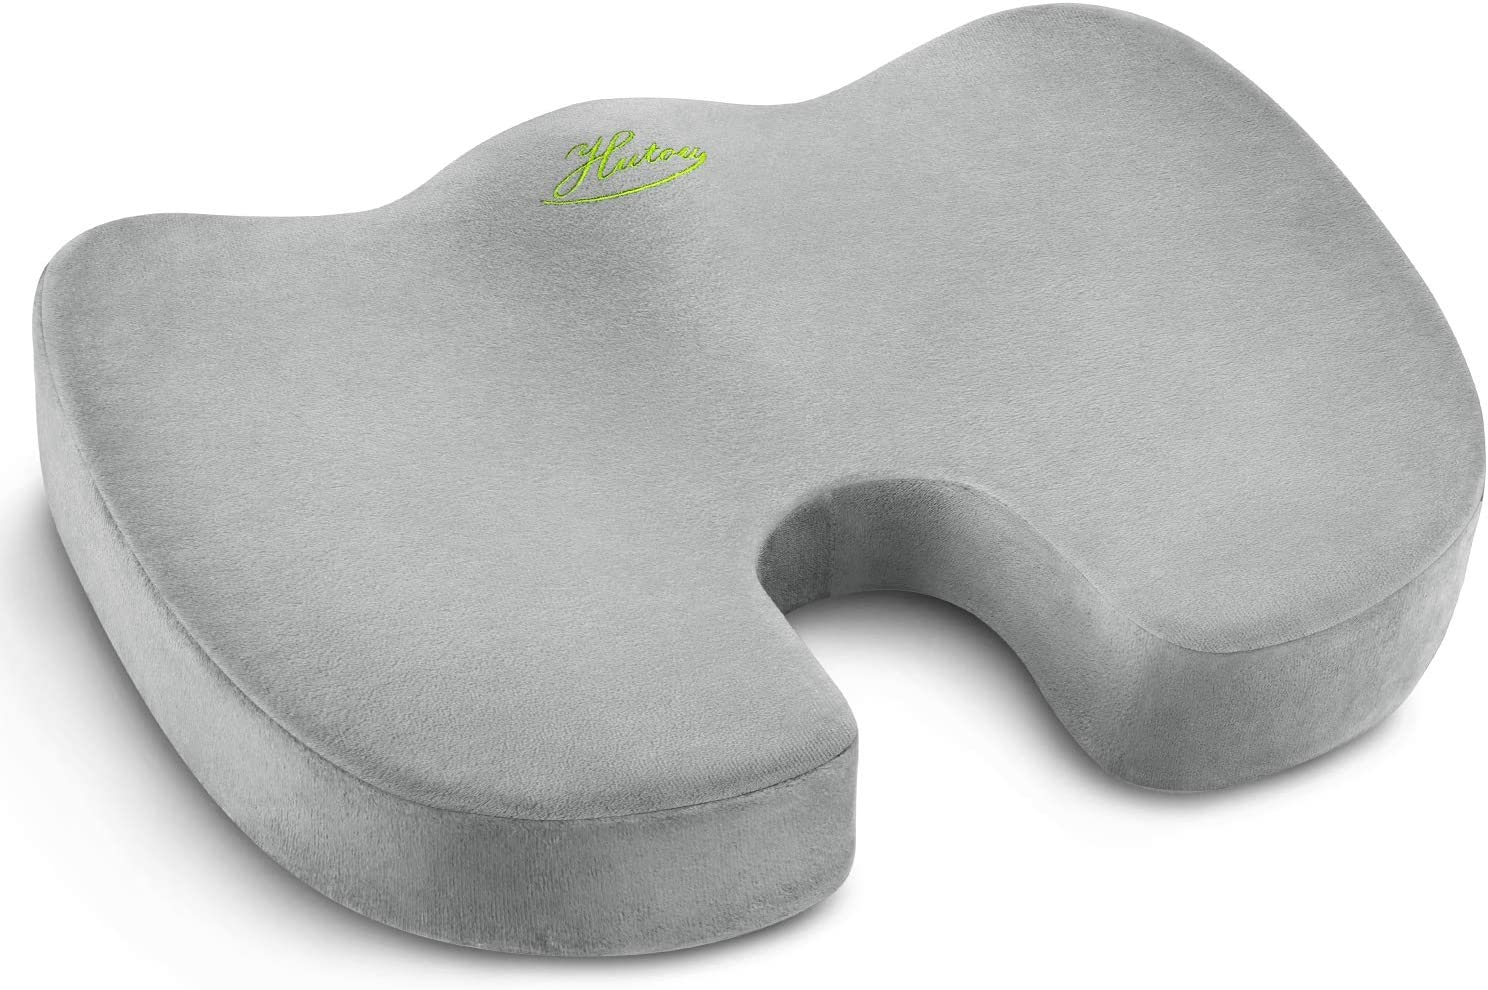 Discount mail Very popular! order Seat Cushion for Office Comfort Chair Pressure Reli